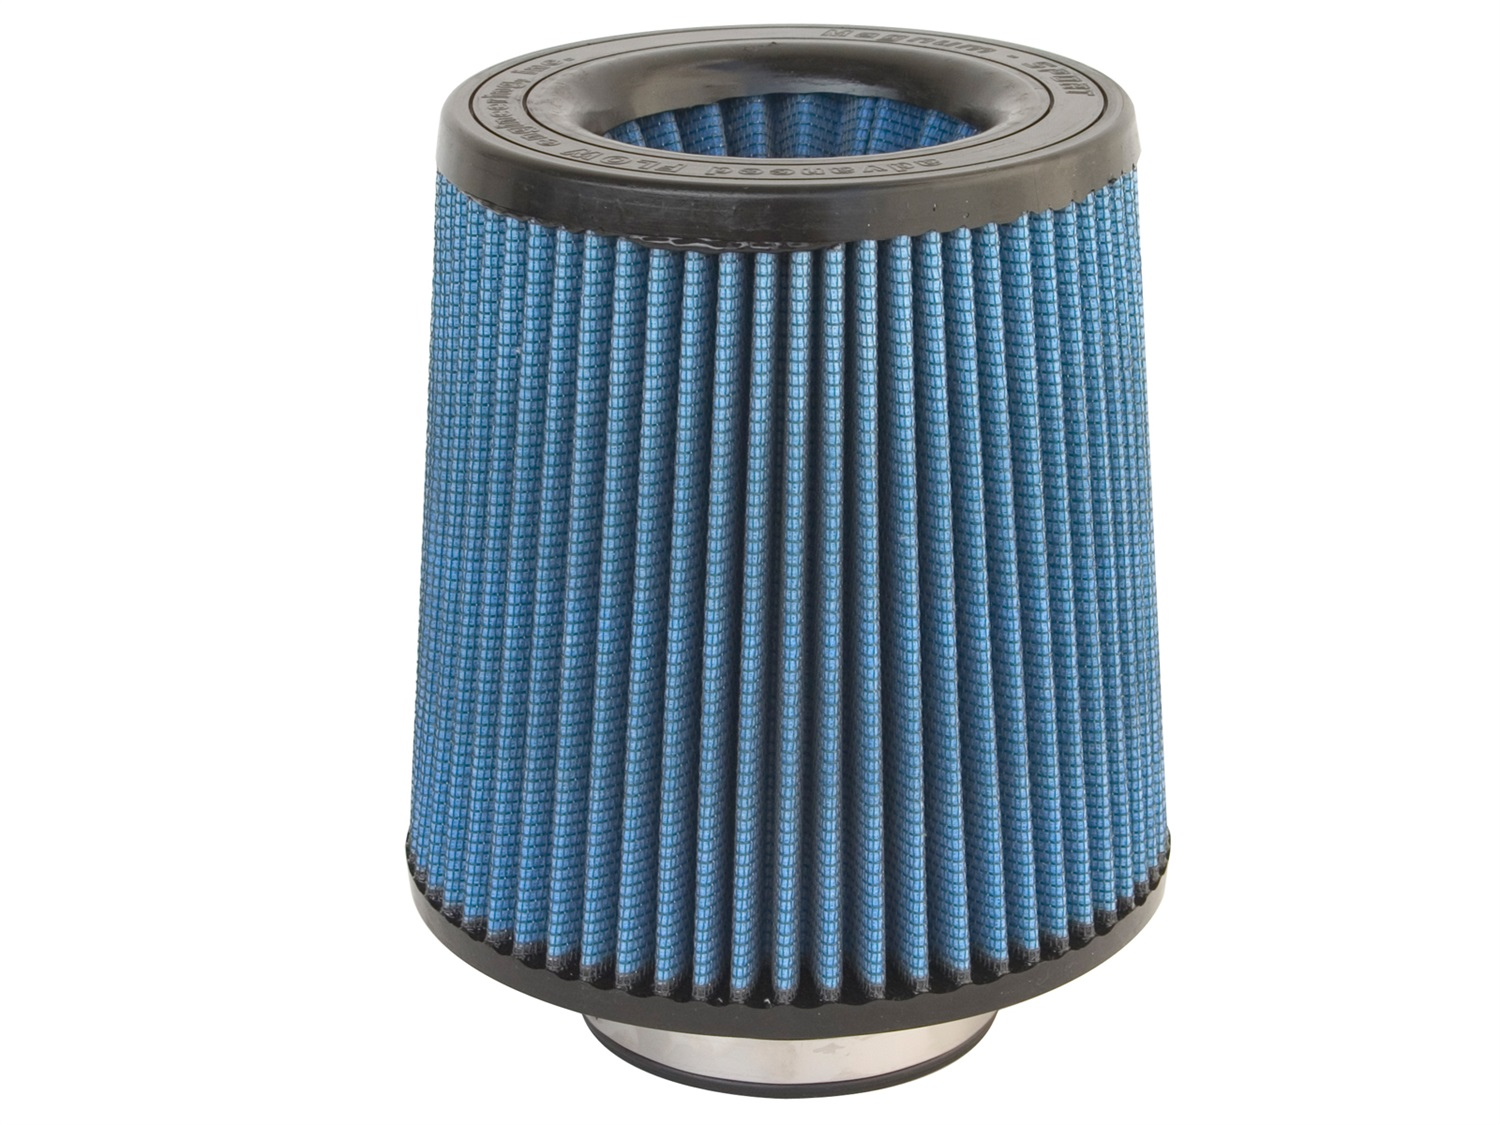 aFe Power 24-91029 MagnumFLOW Intake PRO 5R Air Filter 24-91029